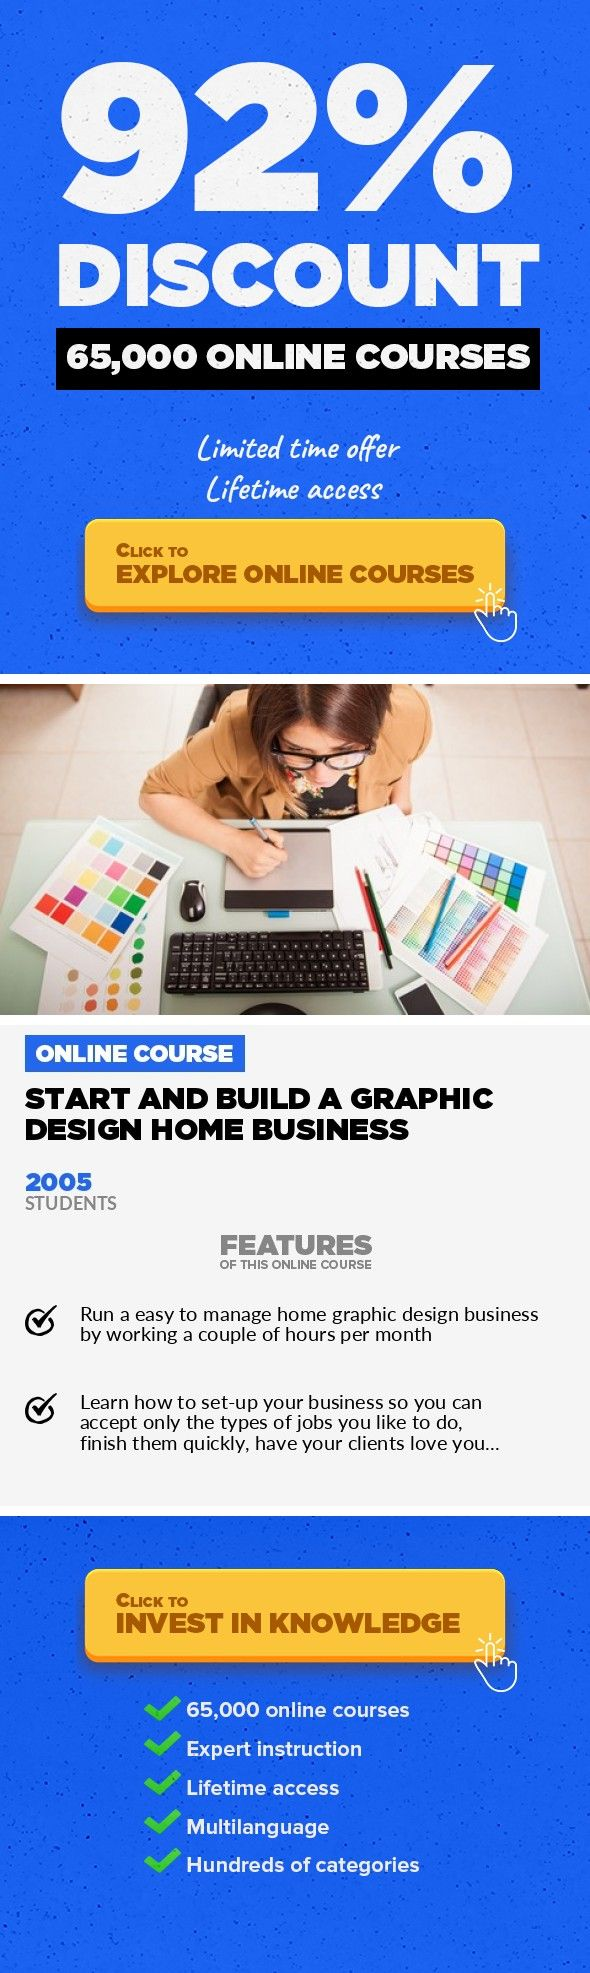 Start And Build a Graphic Design Home Business Home Business ...